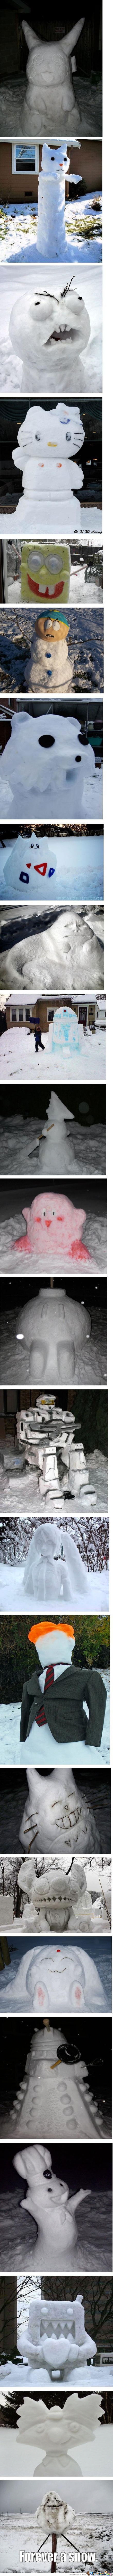 Awesome Snowman (Sorry For The Long Post)